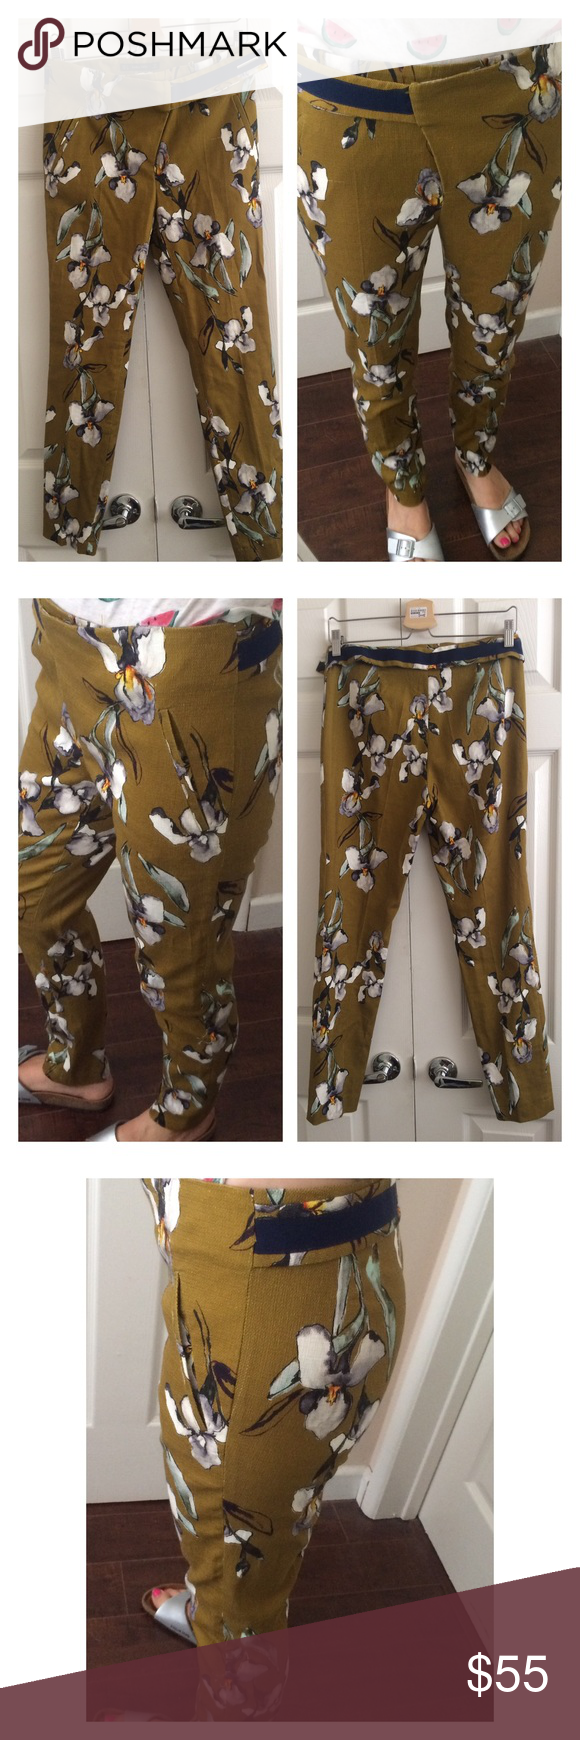 "Zara Floral Pants Pants with floral print made from a thick robust fabric. Reminds me of a combination of linen and canvas. One snag near left print pocket which has been there when I bought them. Unworn condition. 15.5"" waist 10"" rise 27.5"" inseam Zara Pants Trousers"